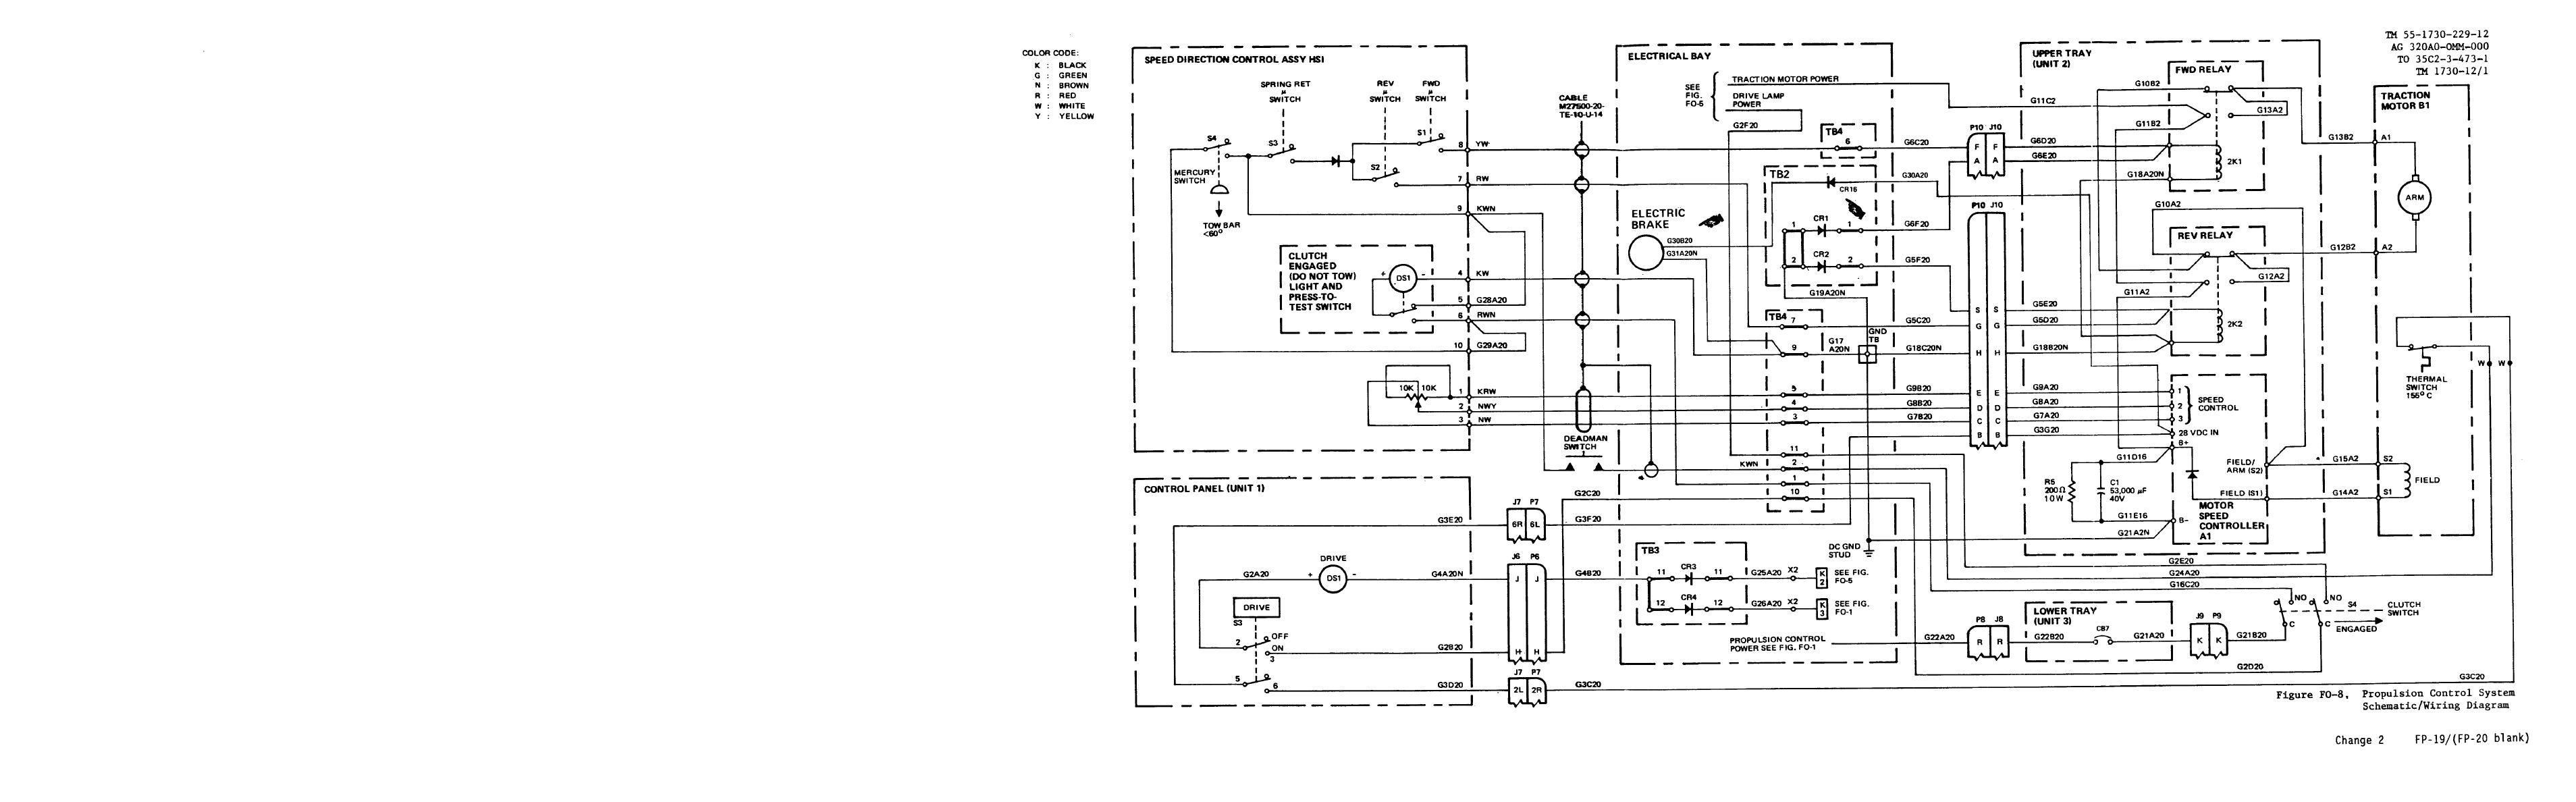 Schematic Pneumatic Controls Wire Center Pic16f877 Ks0108 Circuit Examples Microbasic Proteus Isis Figure Fo 8 Propulsion Control System Wiring Diagram Rh Powersupplies Tpub Com Cylinder Valve Symbols